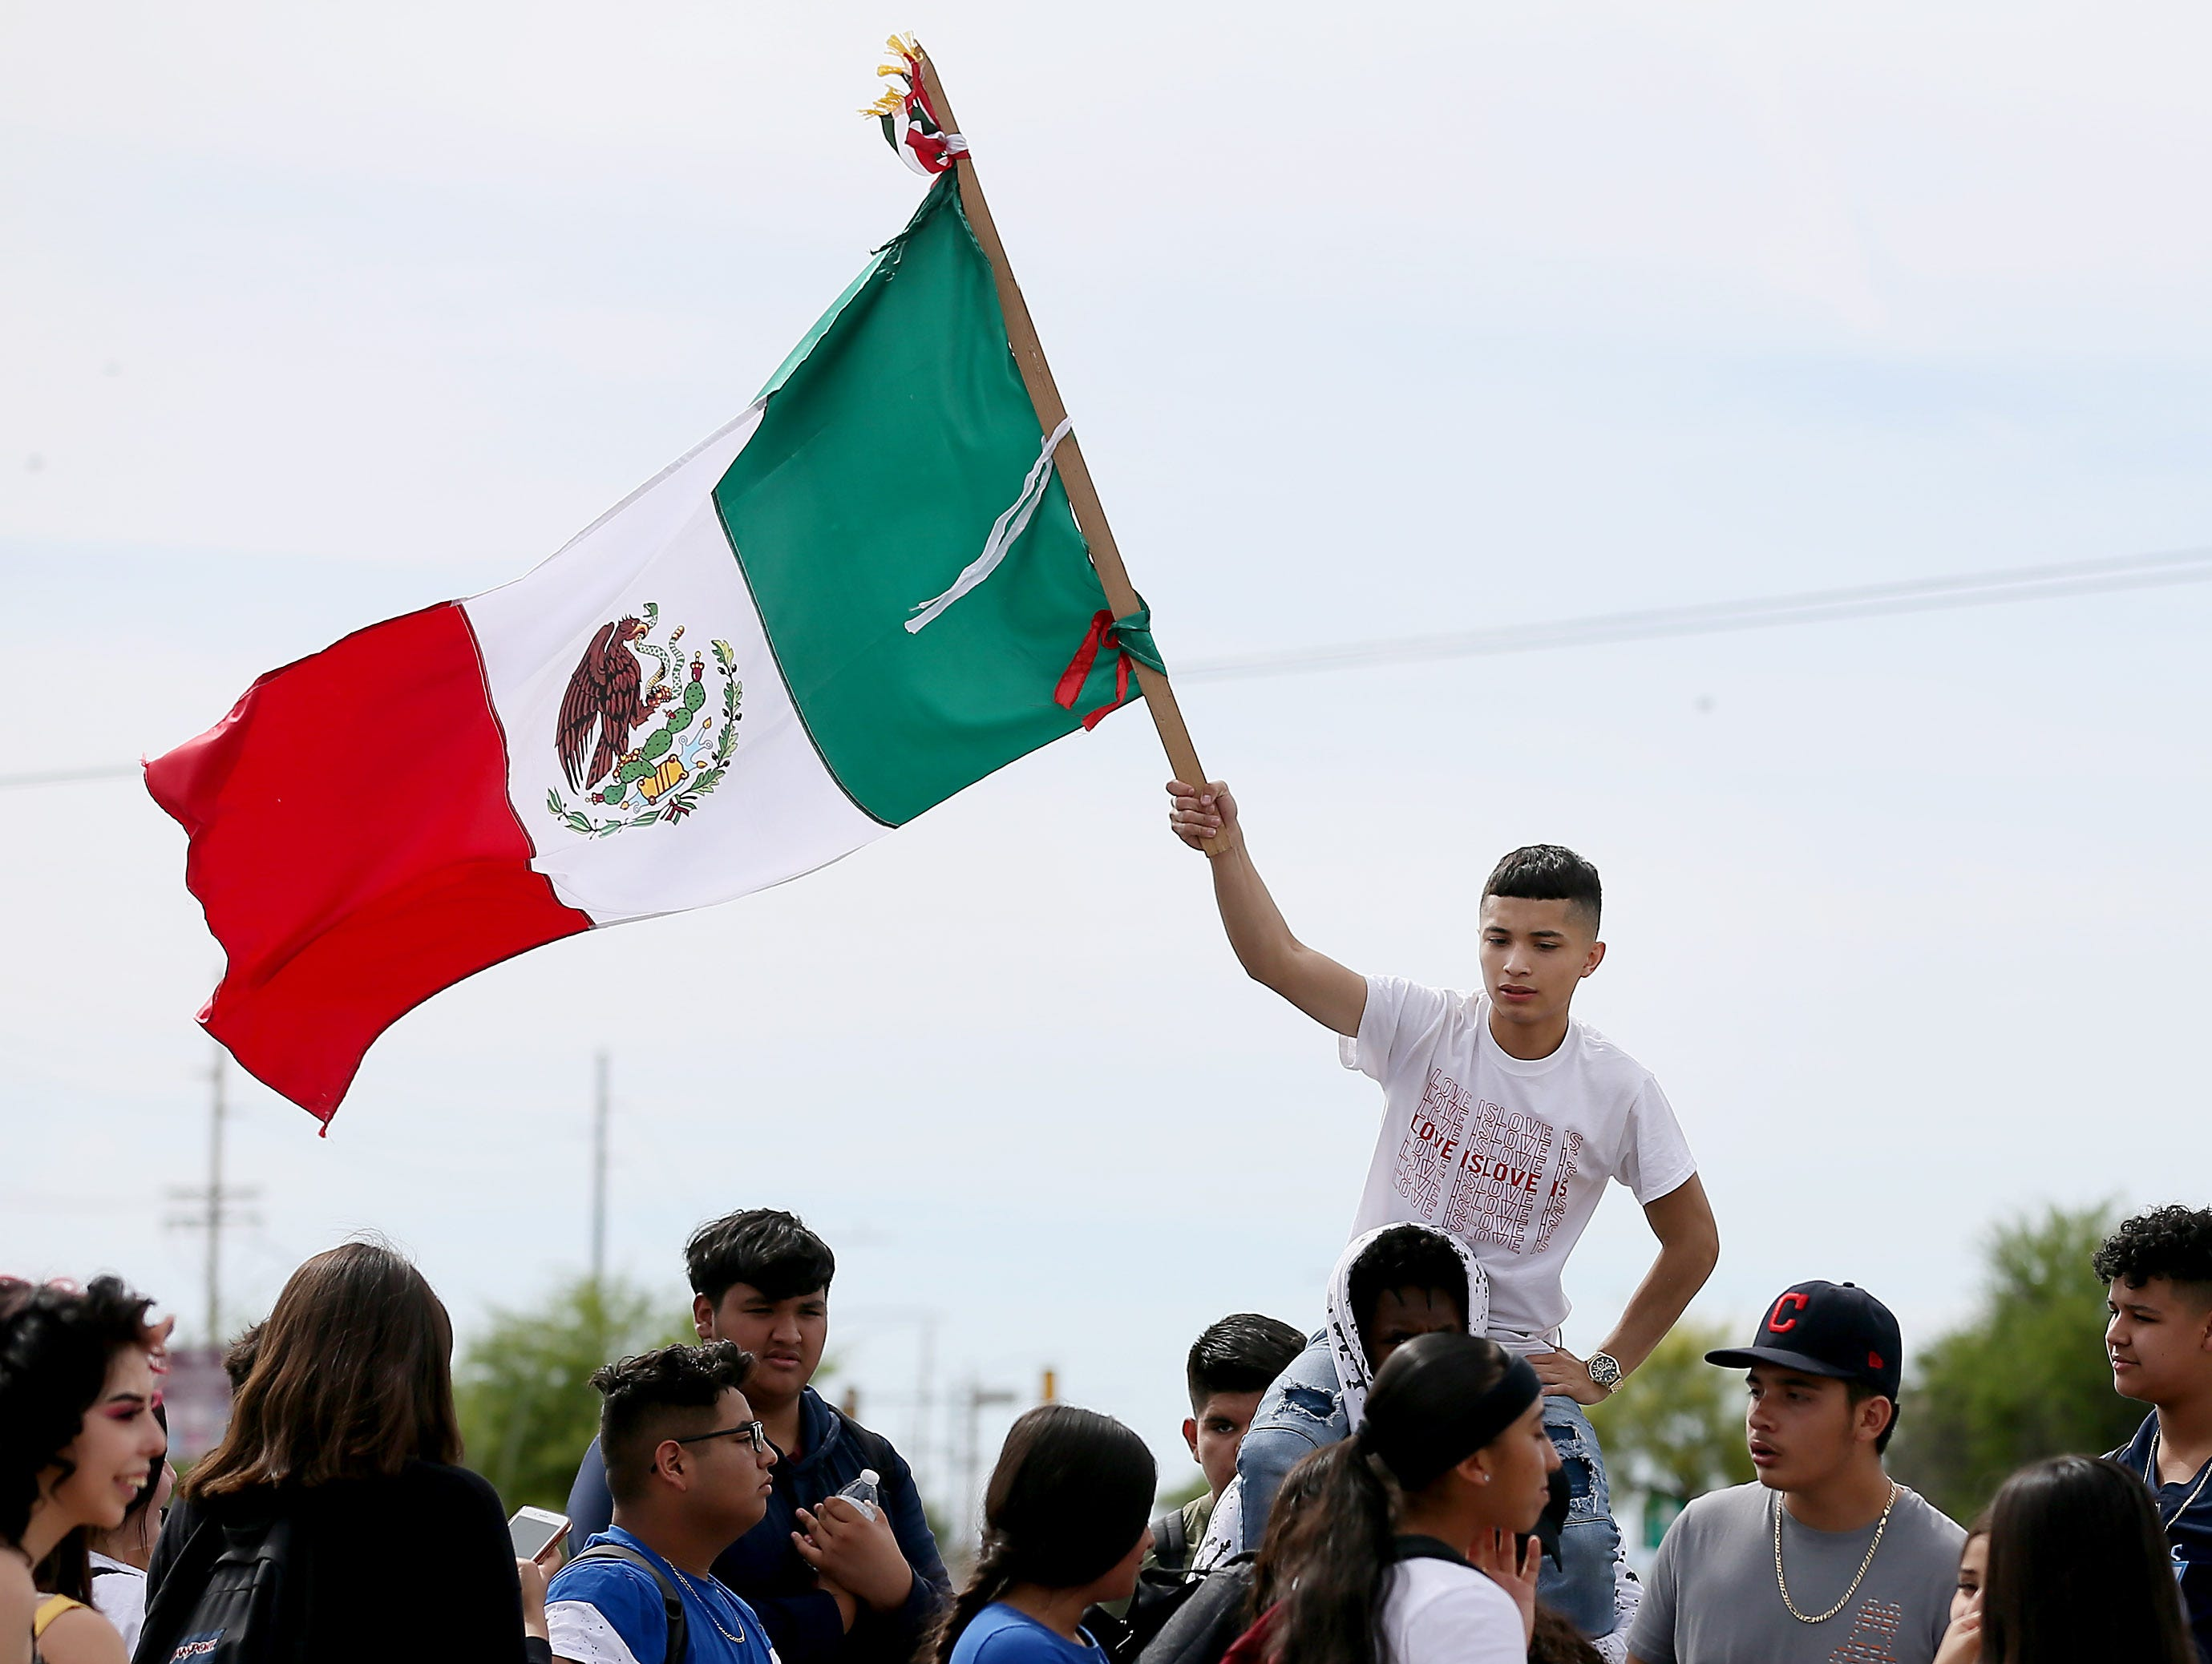 Approximately 200 students from Desert View High School marched to the Pima County Sheriff's Department on May 6th, 2019 to protest the detention of their classmate, Thomas Torres, who was stopped by a sheriff's deputy on May 2 and was detained until Border Patrol arrived.